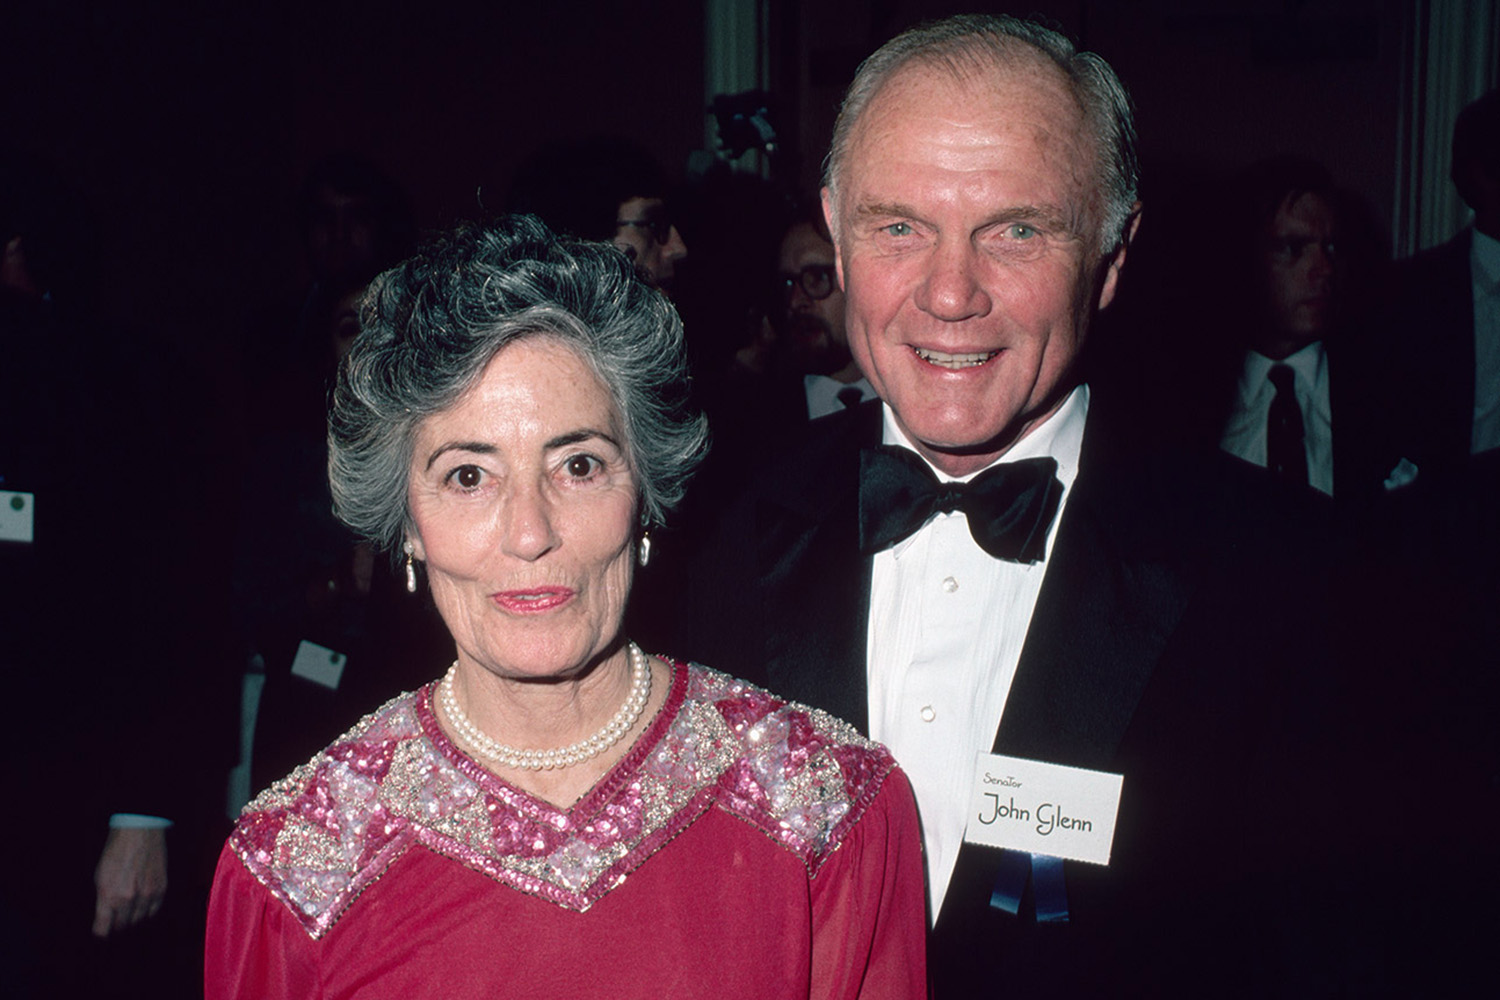 Annie and John Glenn